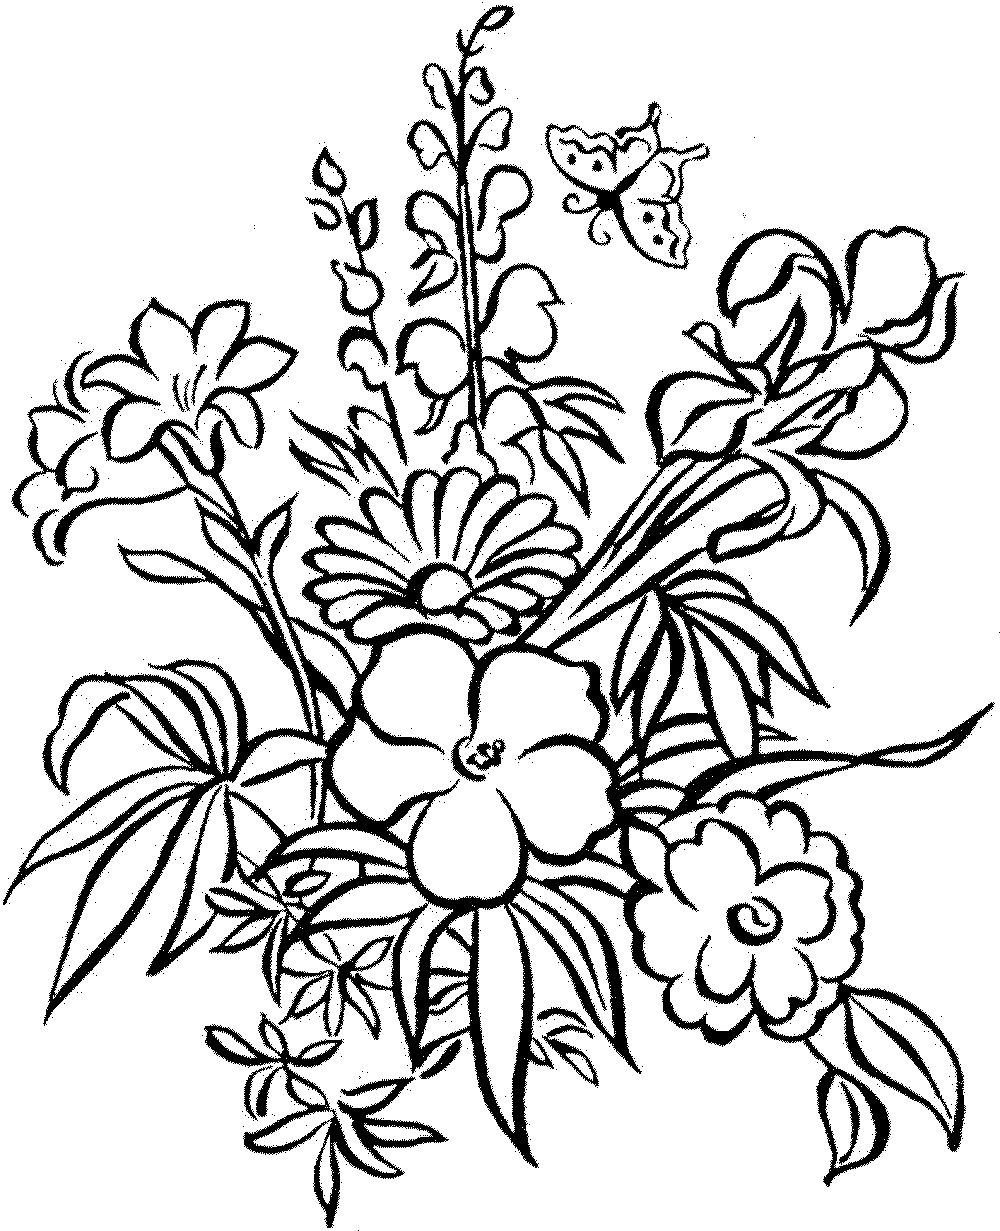 pictures of flowers to color easy coloring pages of flowers at getdrawings free download pictures flowers to of color